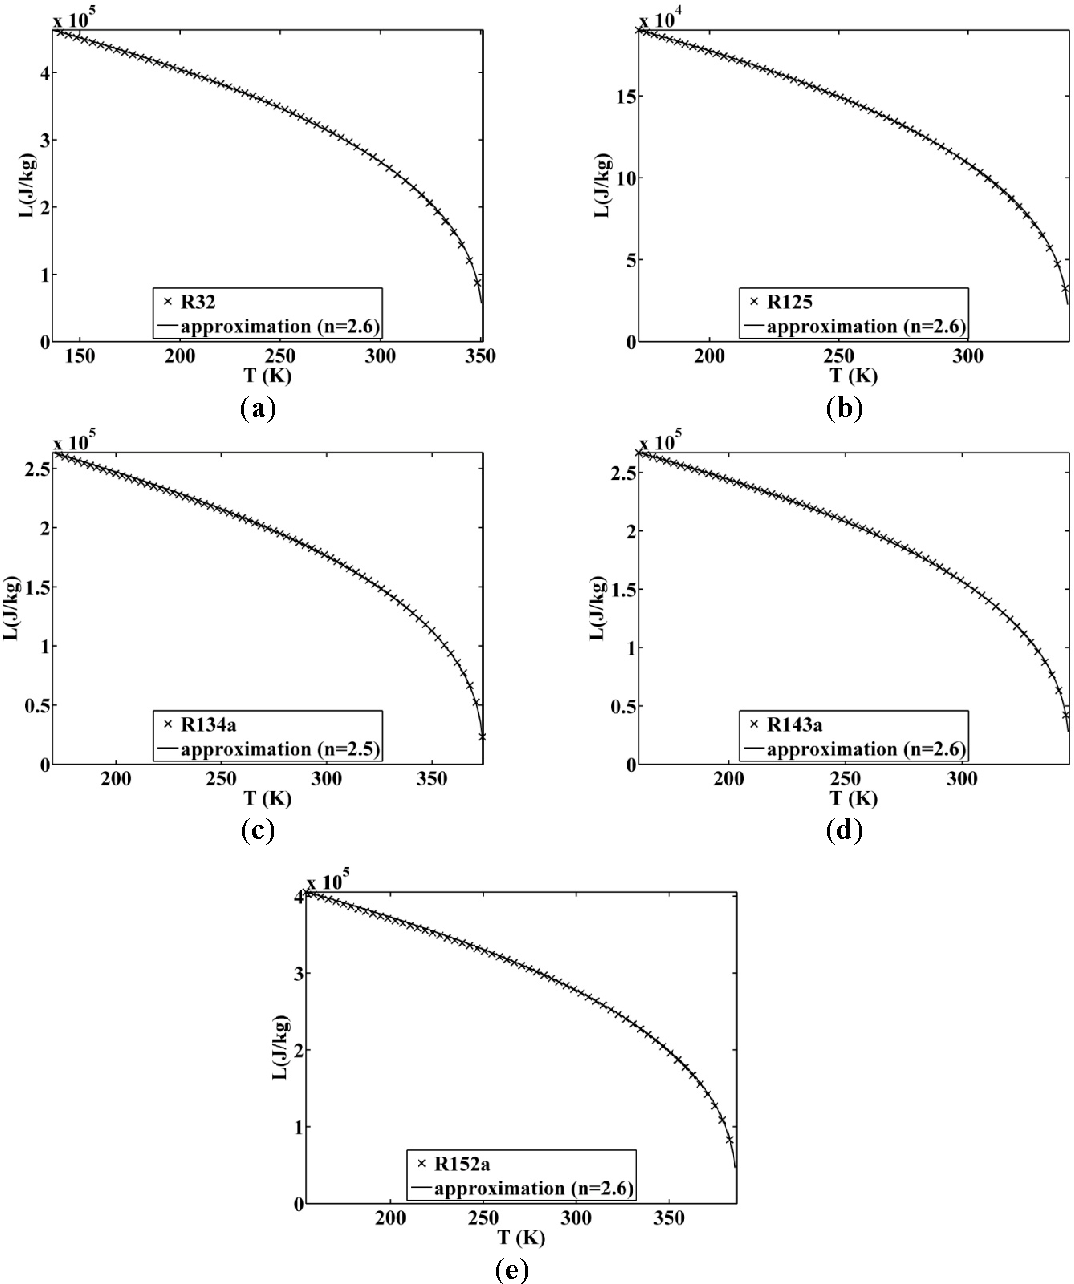 Figure 11. Approximated latent heat of vaporization for (a) R32; (b) R125; (c) R134a; (d) R143a; and (e) R152a.